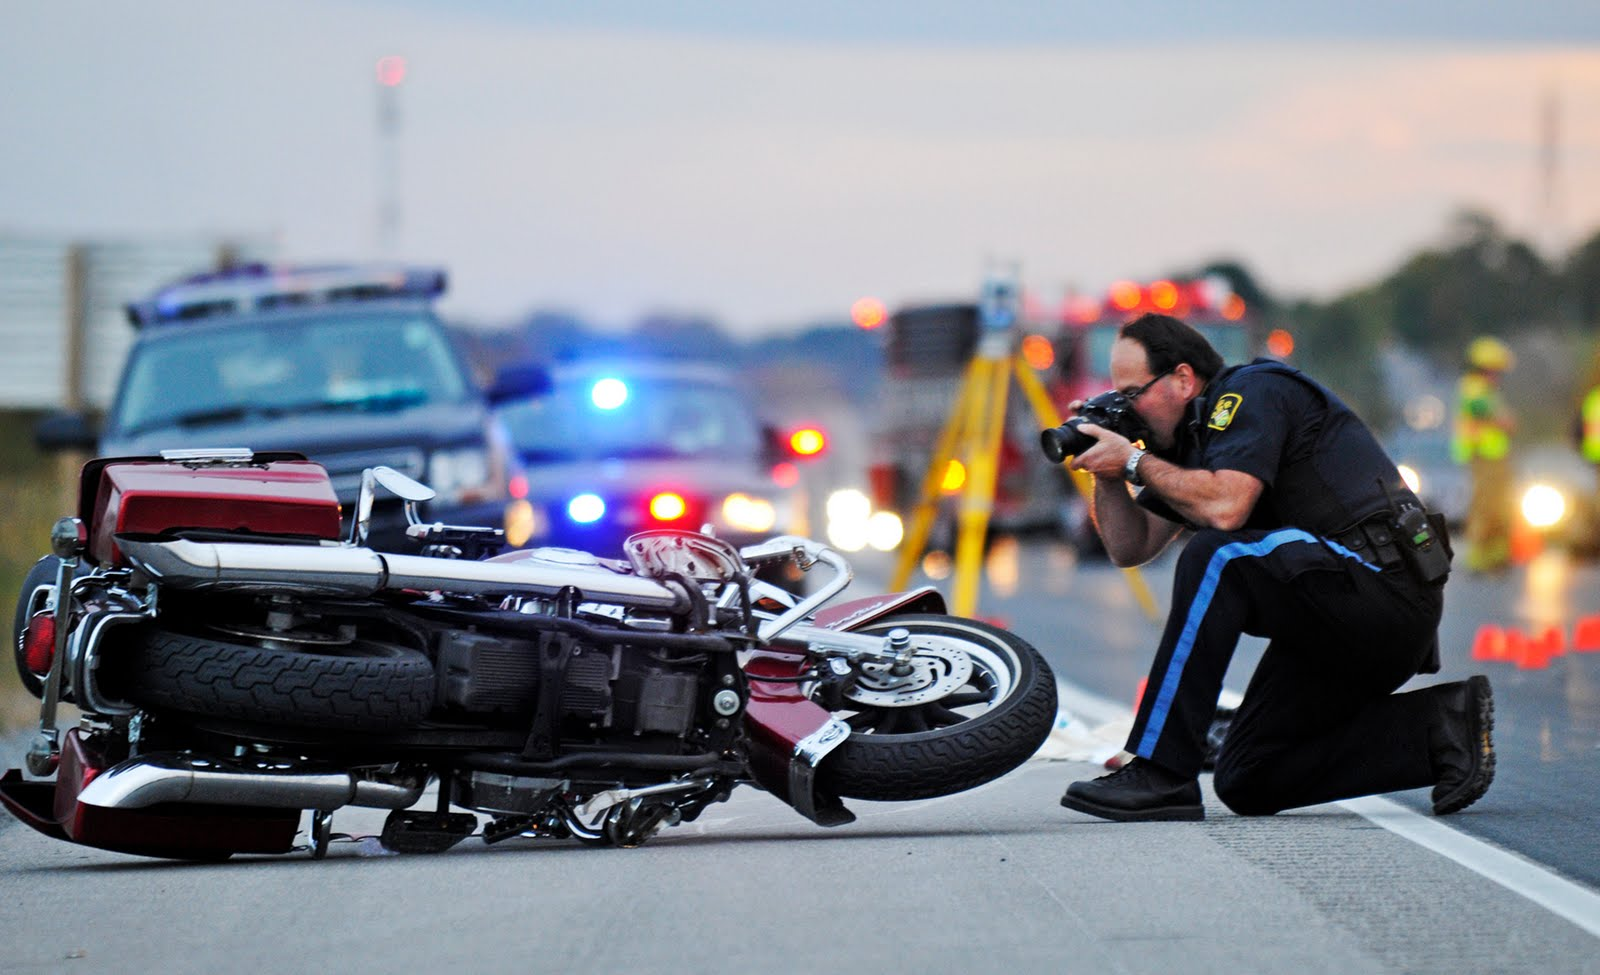 Top Five Motorcycle Accidents In Dallas Tx - Circus